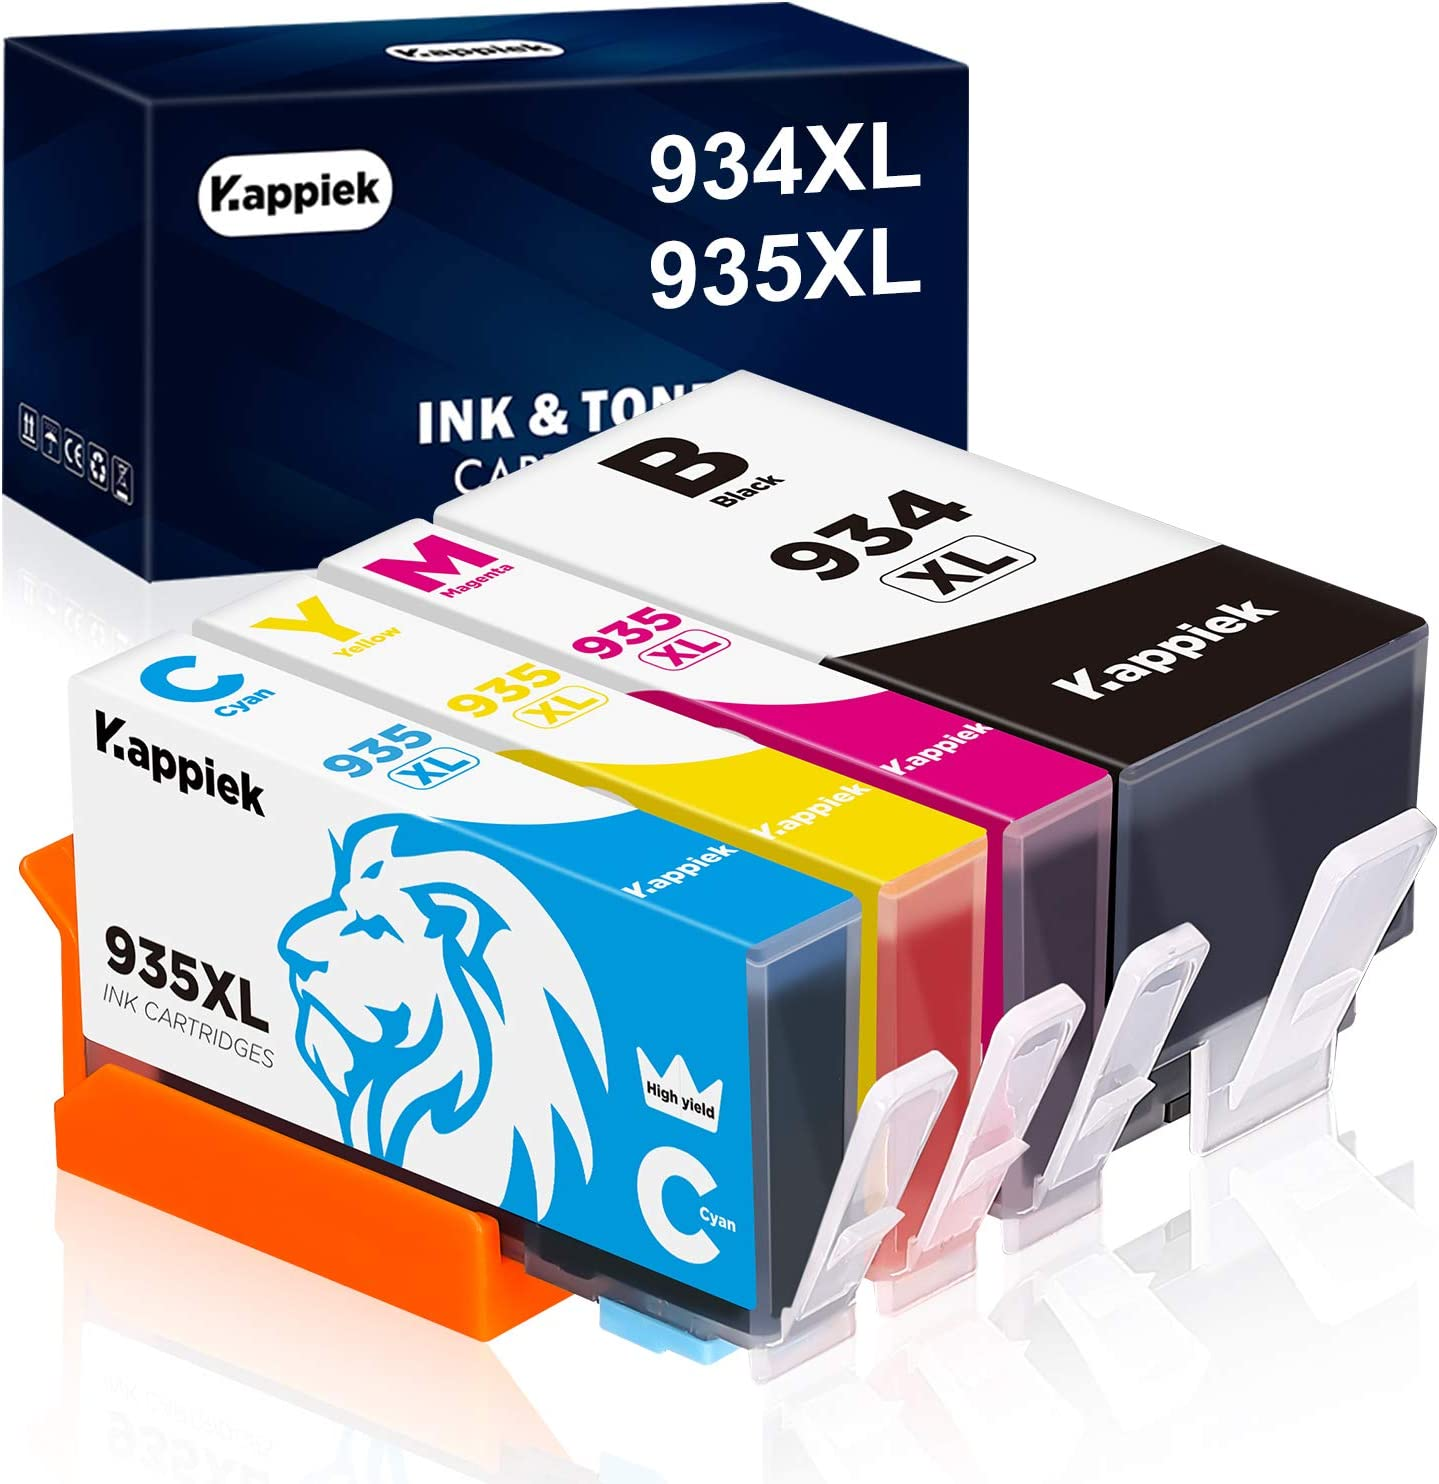 Kappiek 934XL 935XL Compatible Ink Cartridge Replacement for HP 934 and 935 Ink Cartridges for HP Officejet Pro 6830 6230 6815 6835 6812 6820 6220 Printer (1 Black, 1 Cyan, 1 Magenta, 1 Yellow)